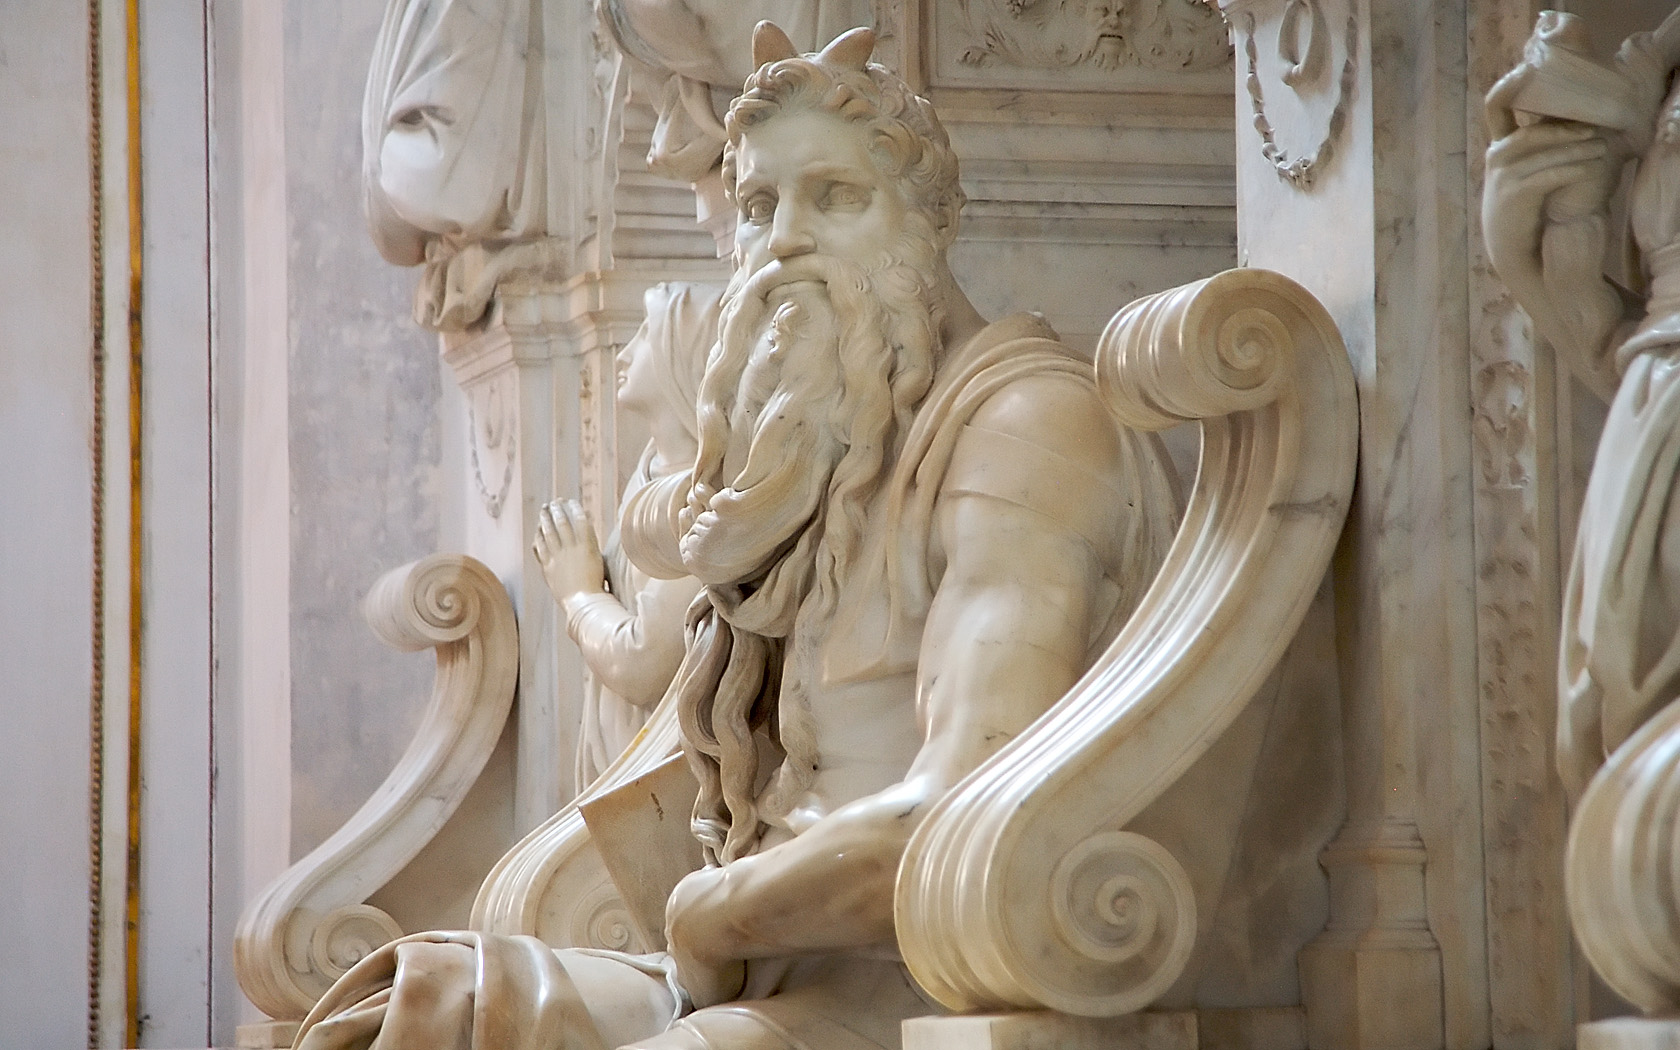 Michelangelo's Moses